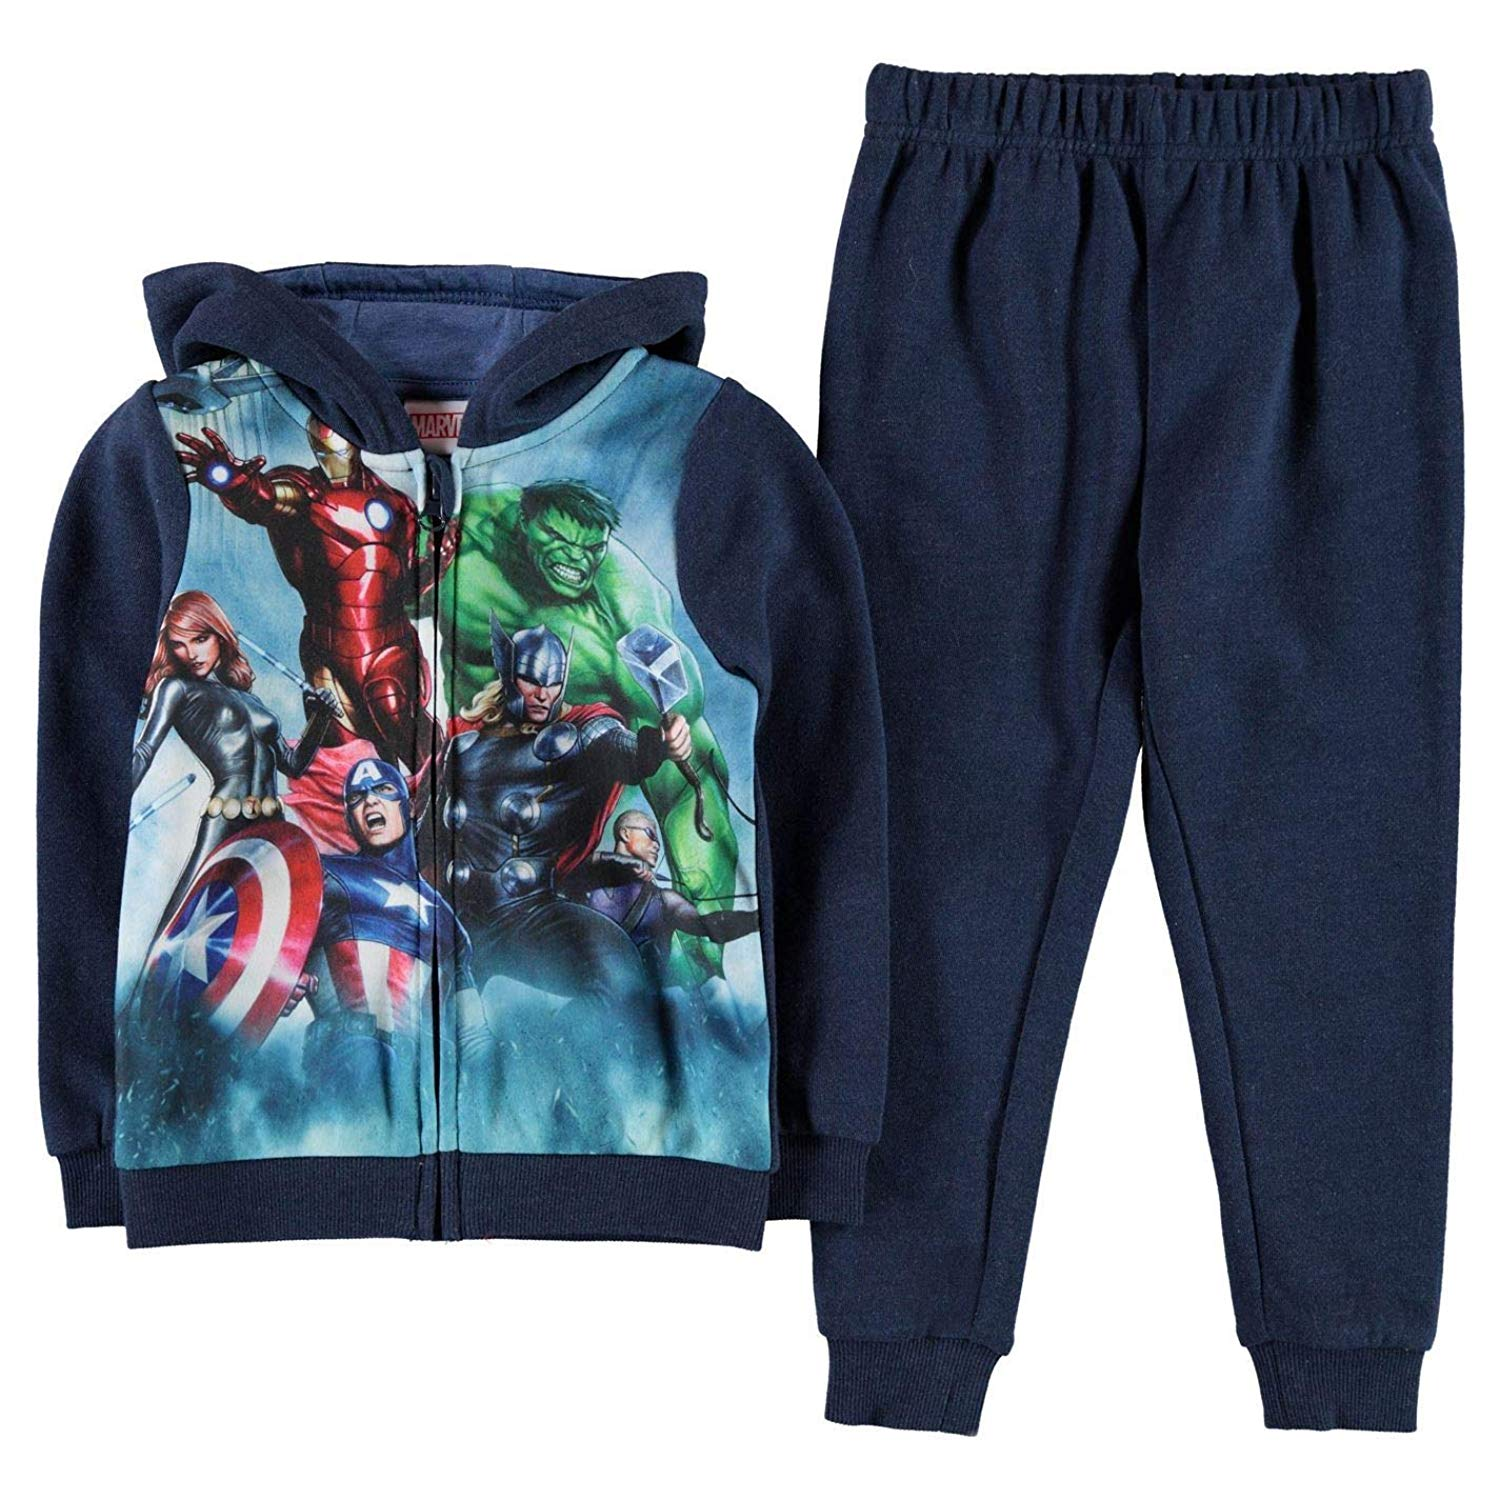 a62dd6881 Get Quotations · Character Tracksuit 2 Piece Set Infant Junior Boys Hoody  Pants Jogger Suit